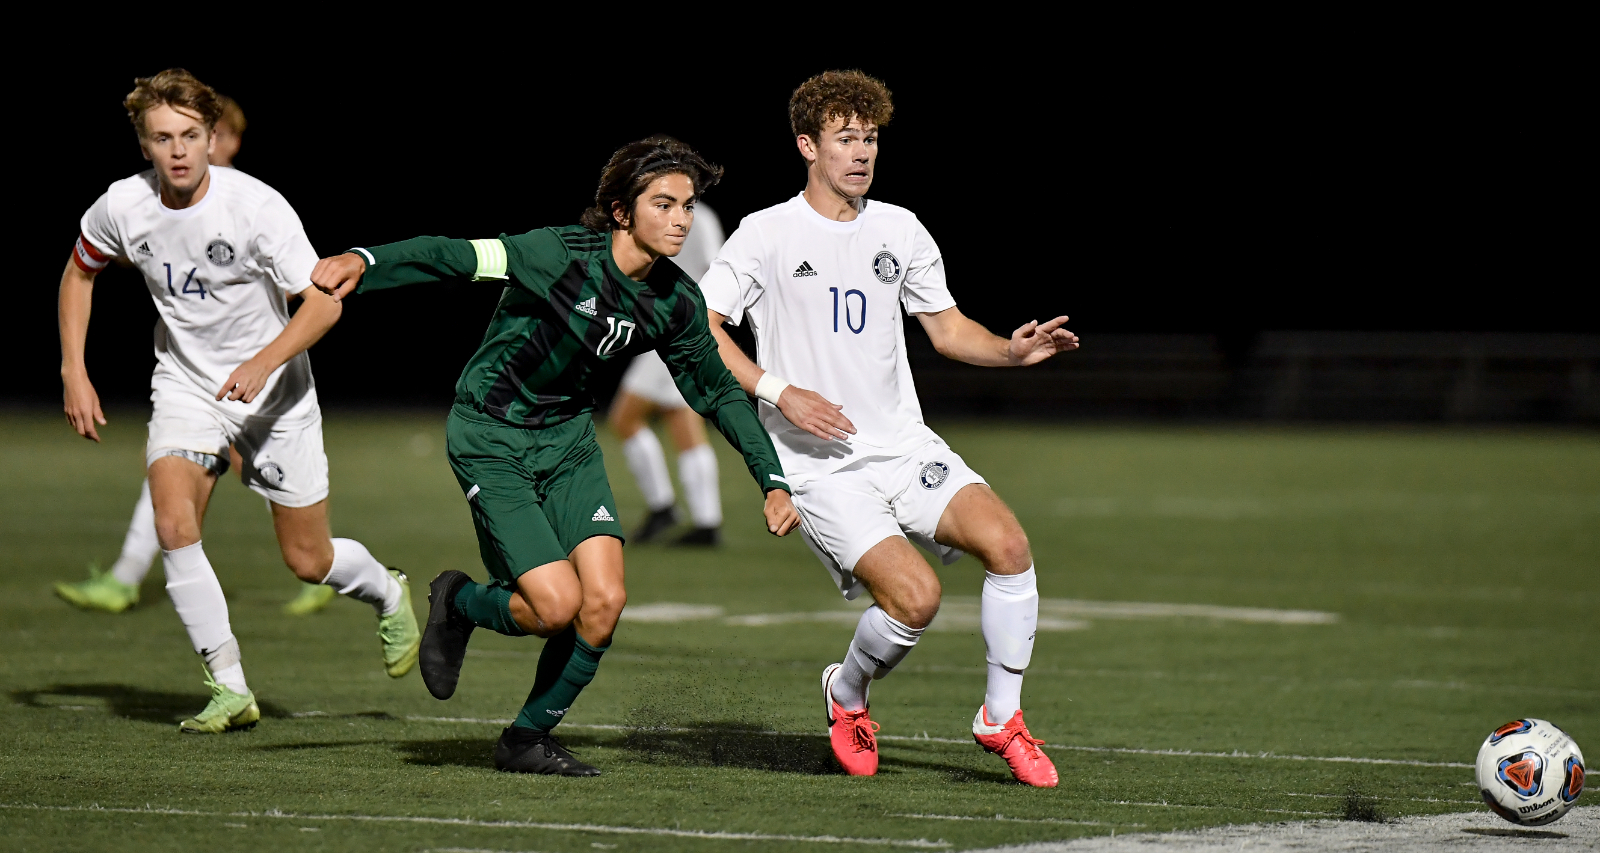 Images from Hudson Boys Soccer @ Nordonia